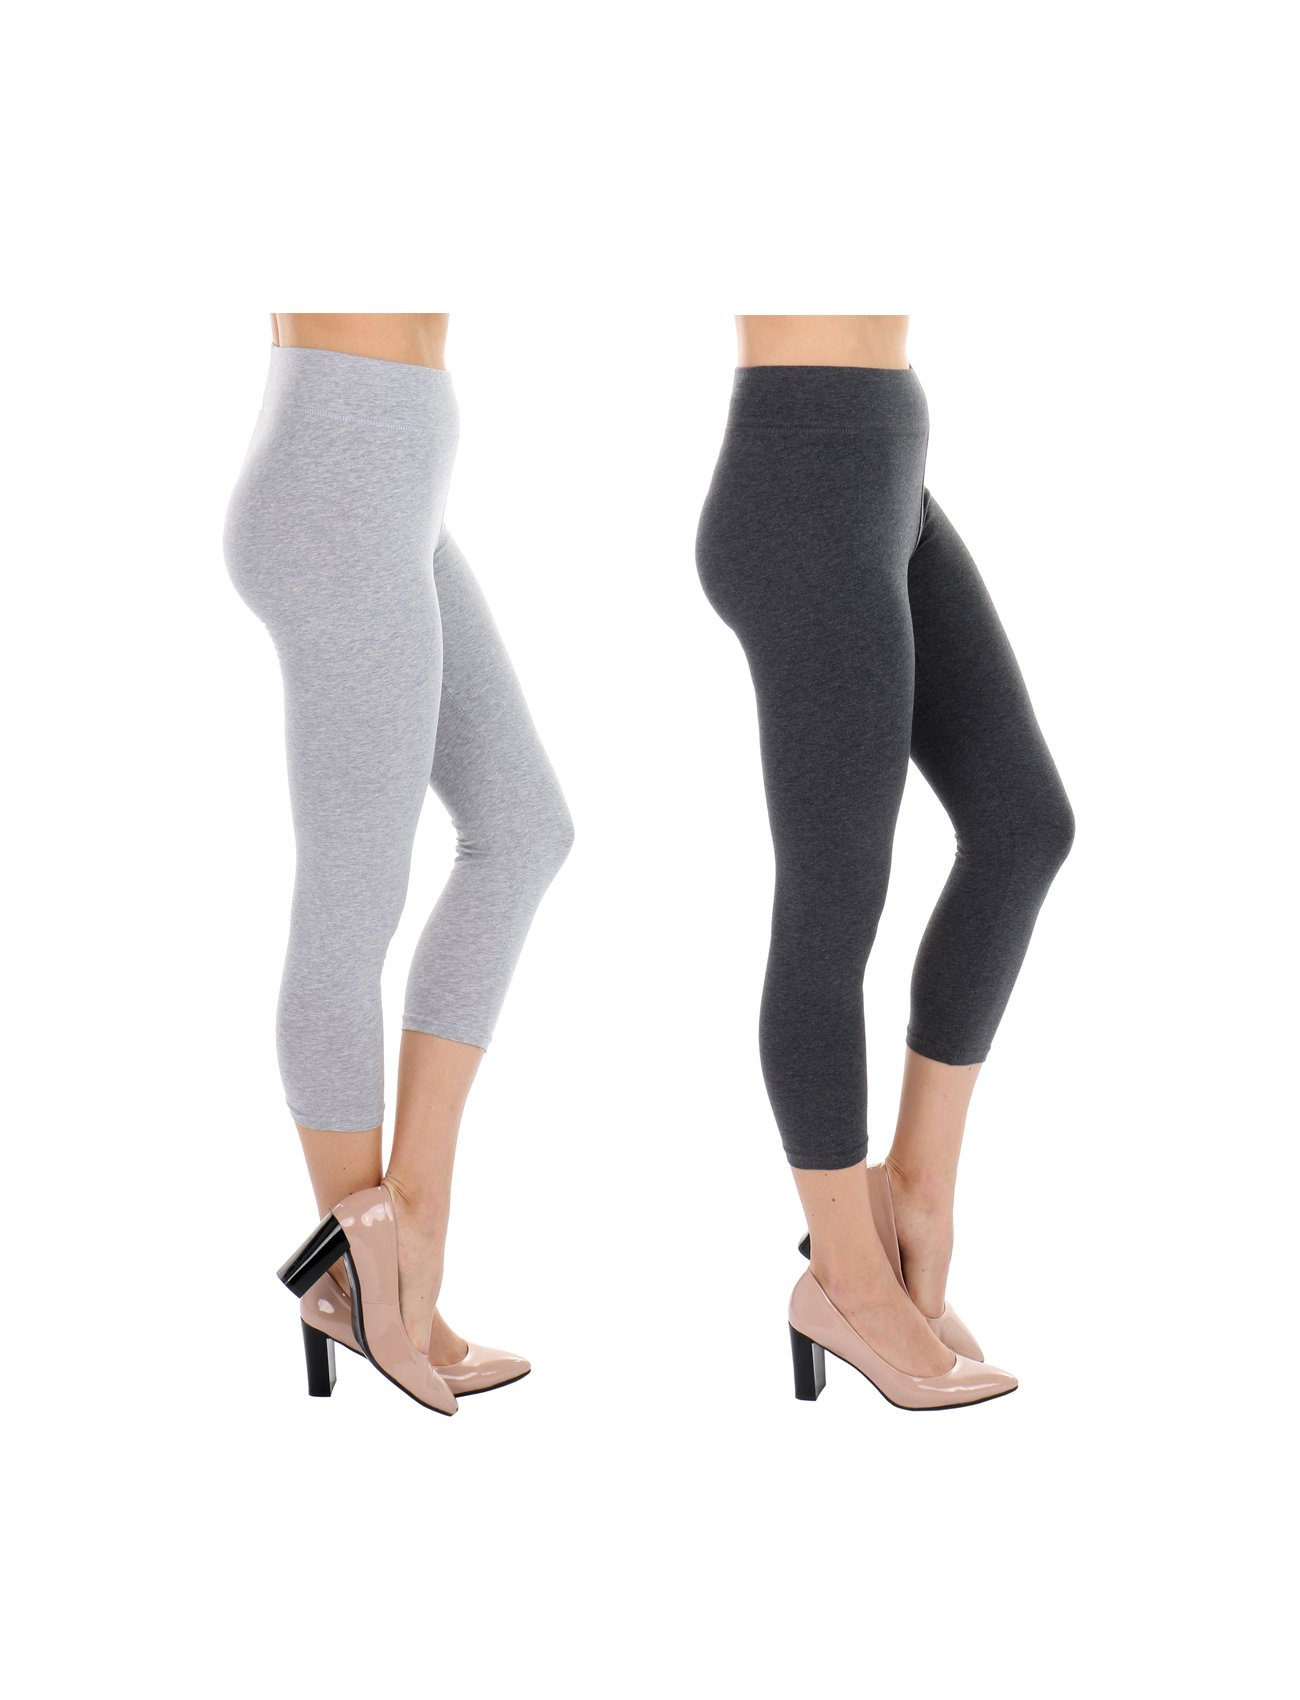 TODAY SHOWROOM Cotton Capri- Non See Thru Fabric-Yoga Waist Cropped Leggings (2pk (H.Grey/Charcoal), Large)